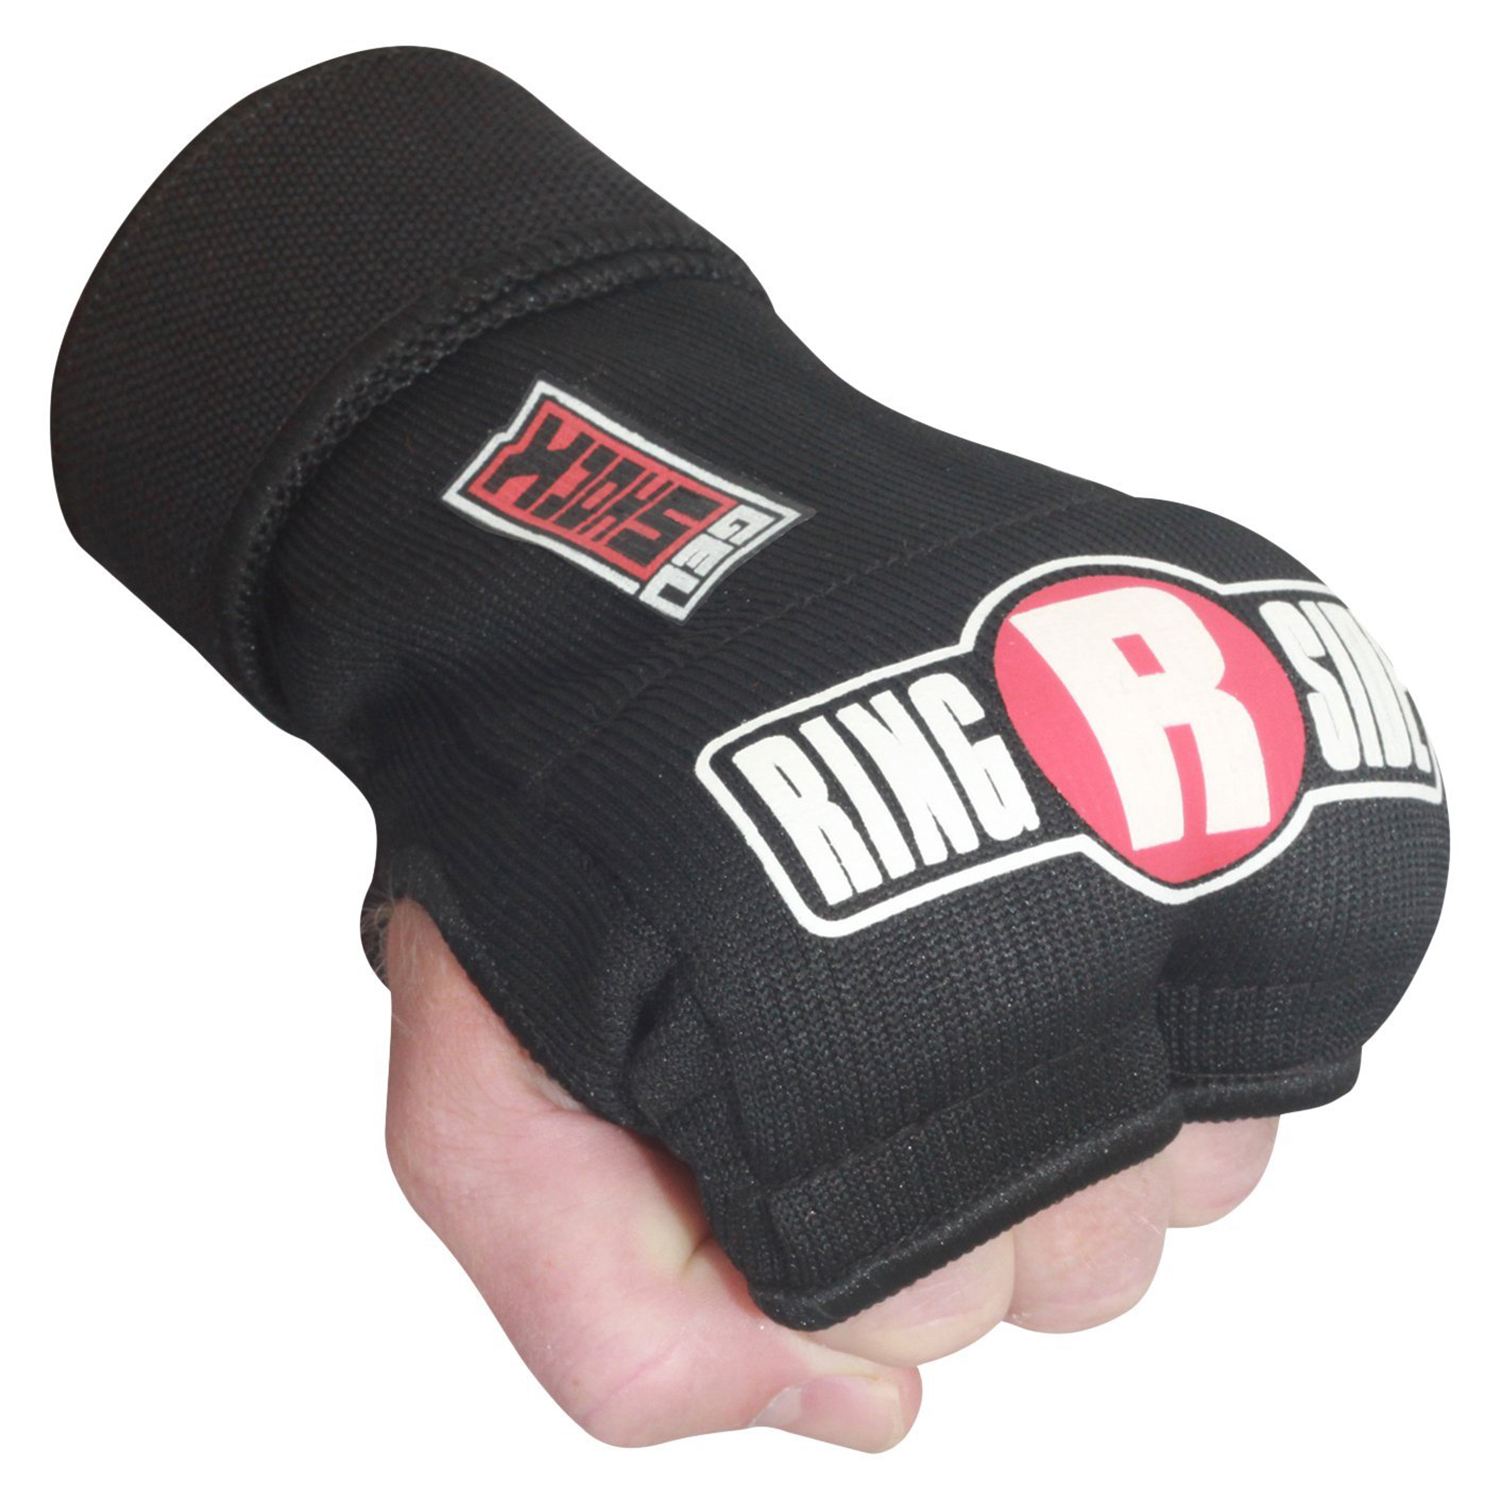 New Sale RINGSIDE Quick Wrap Muay Thai MMA Kickboxing Training Boxing Hand Glove Wraps(Pair) authentic rdx inner hand wraps gloves boxing fist padded bandages mma gel thai